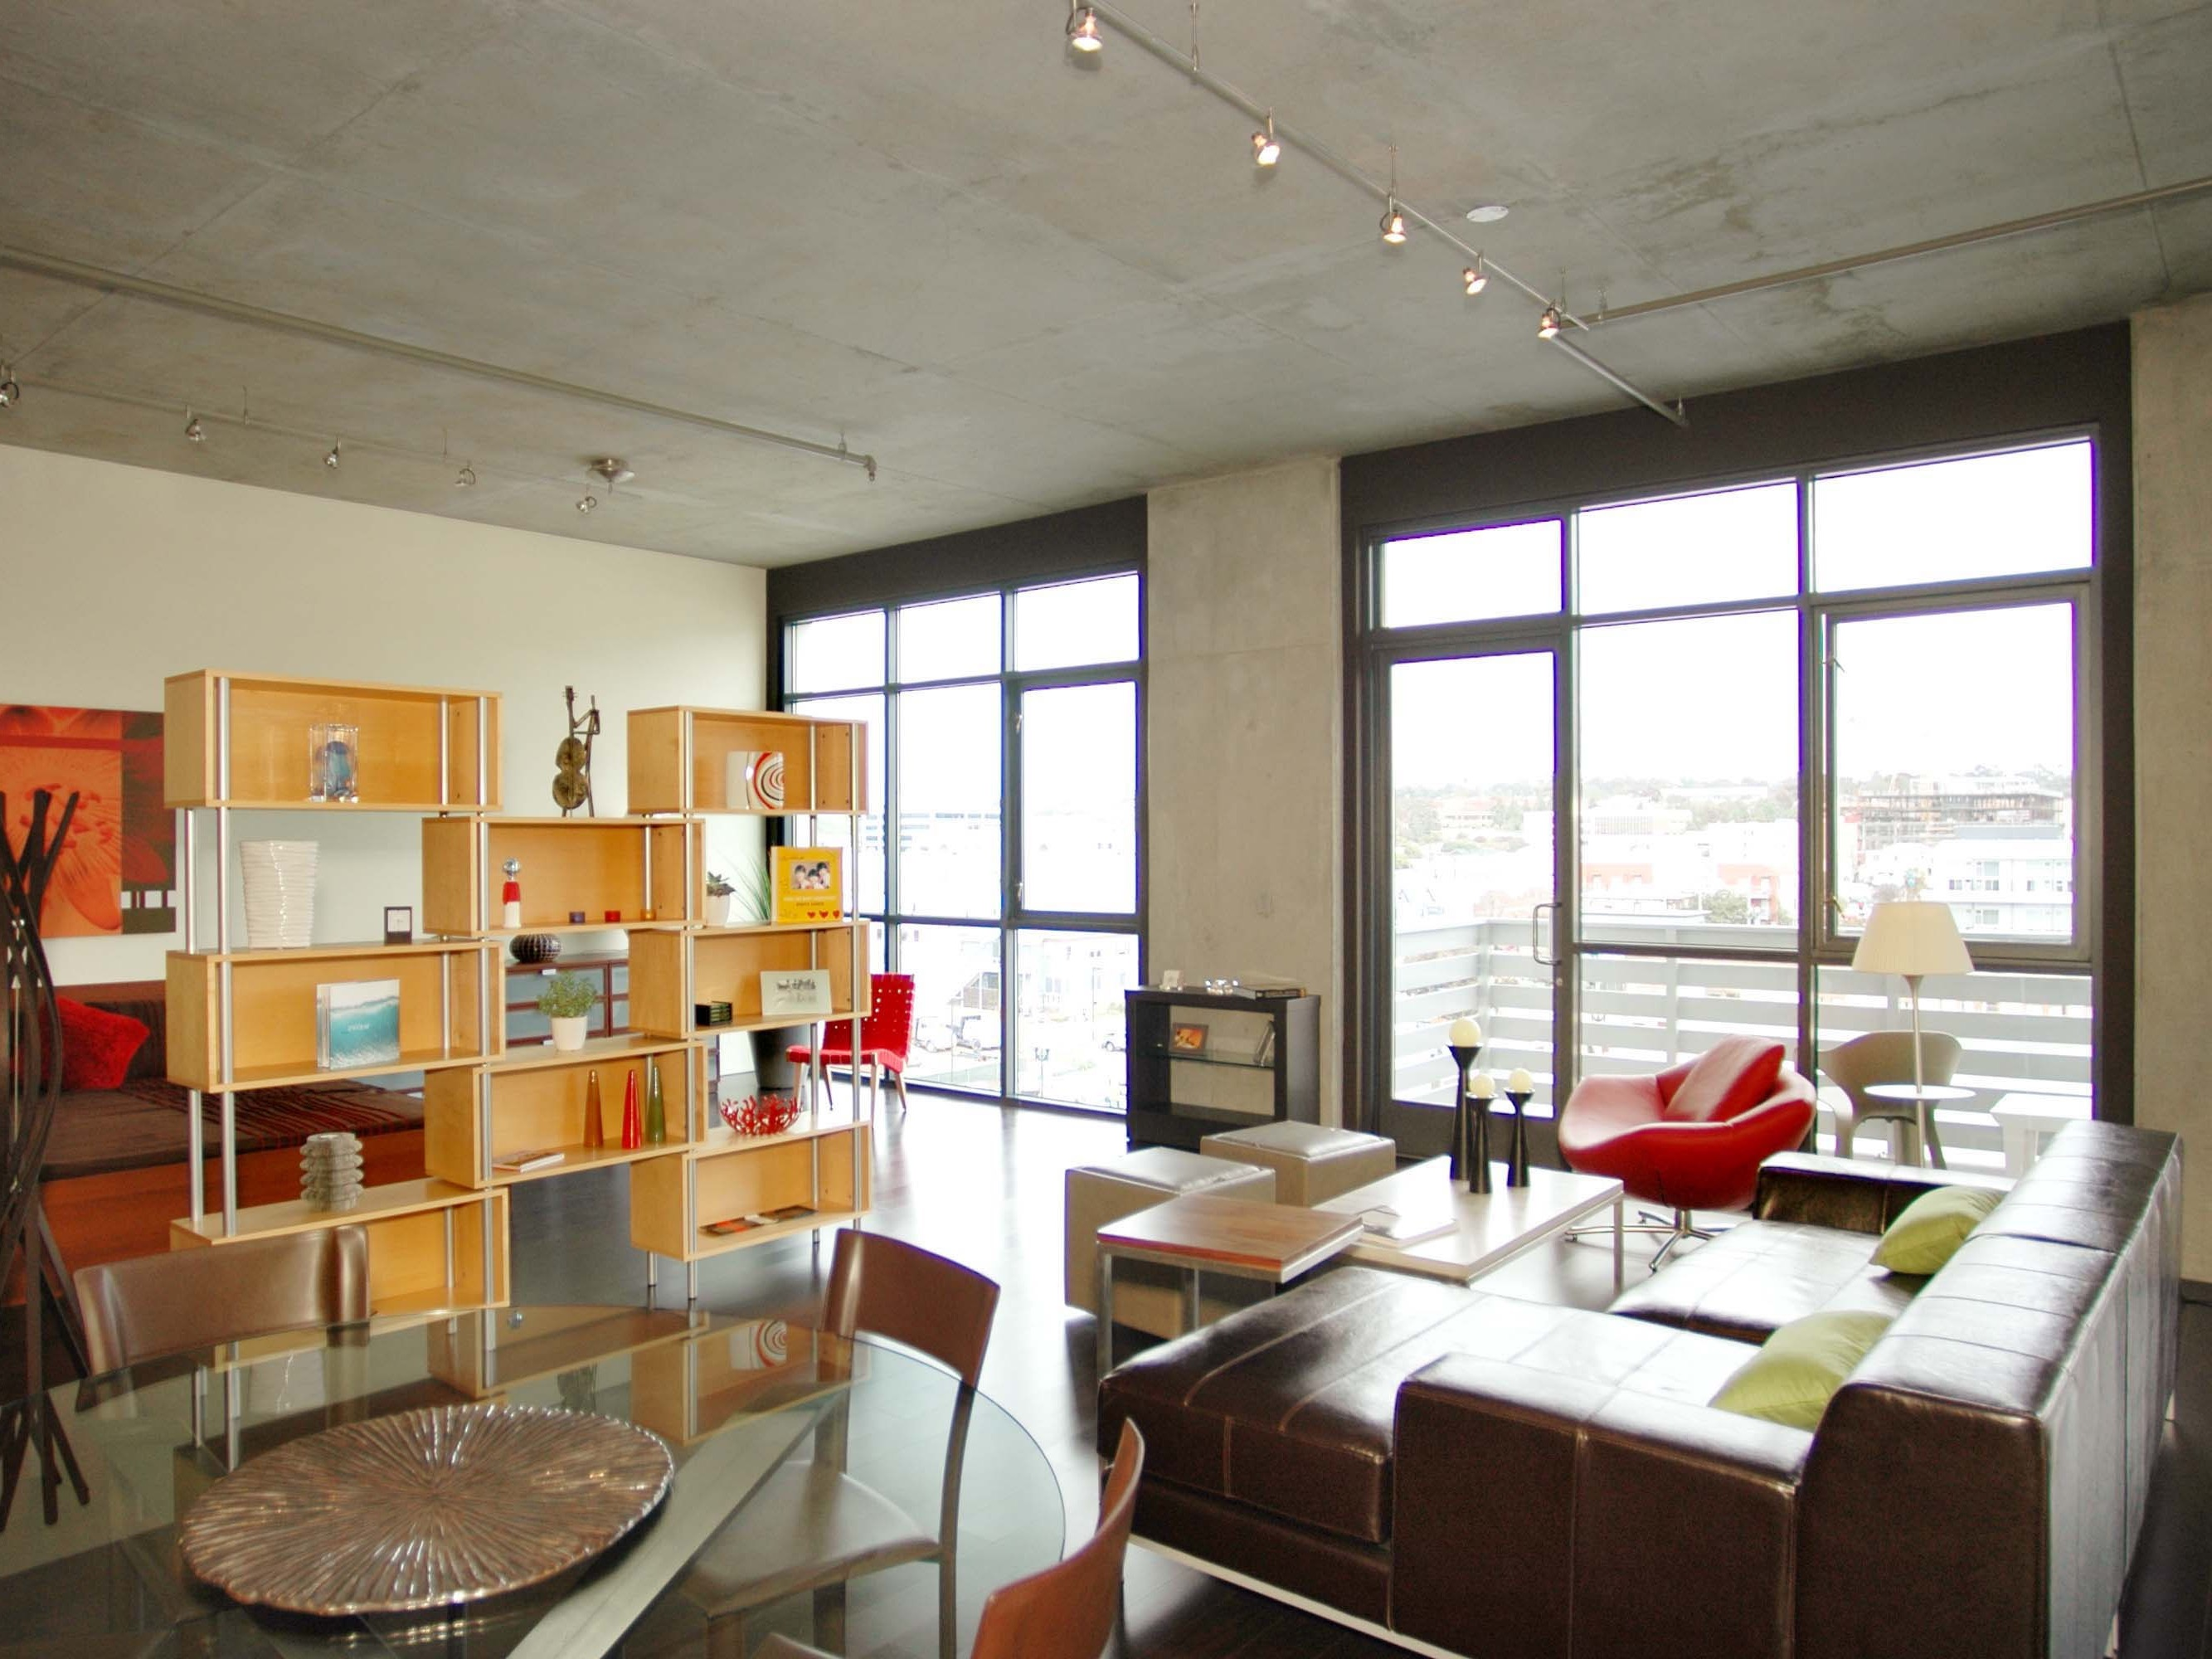 Geometric Urban Loft Apartment Interior (Image 12 of 30)